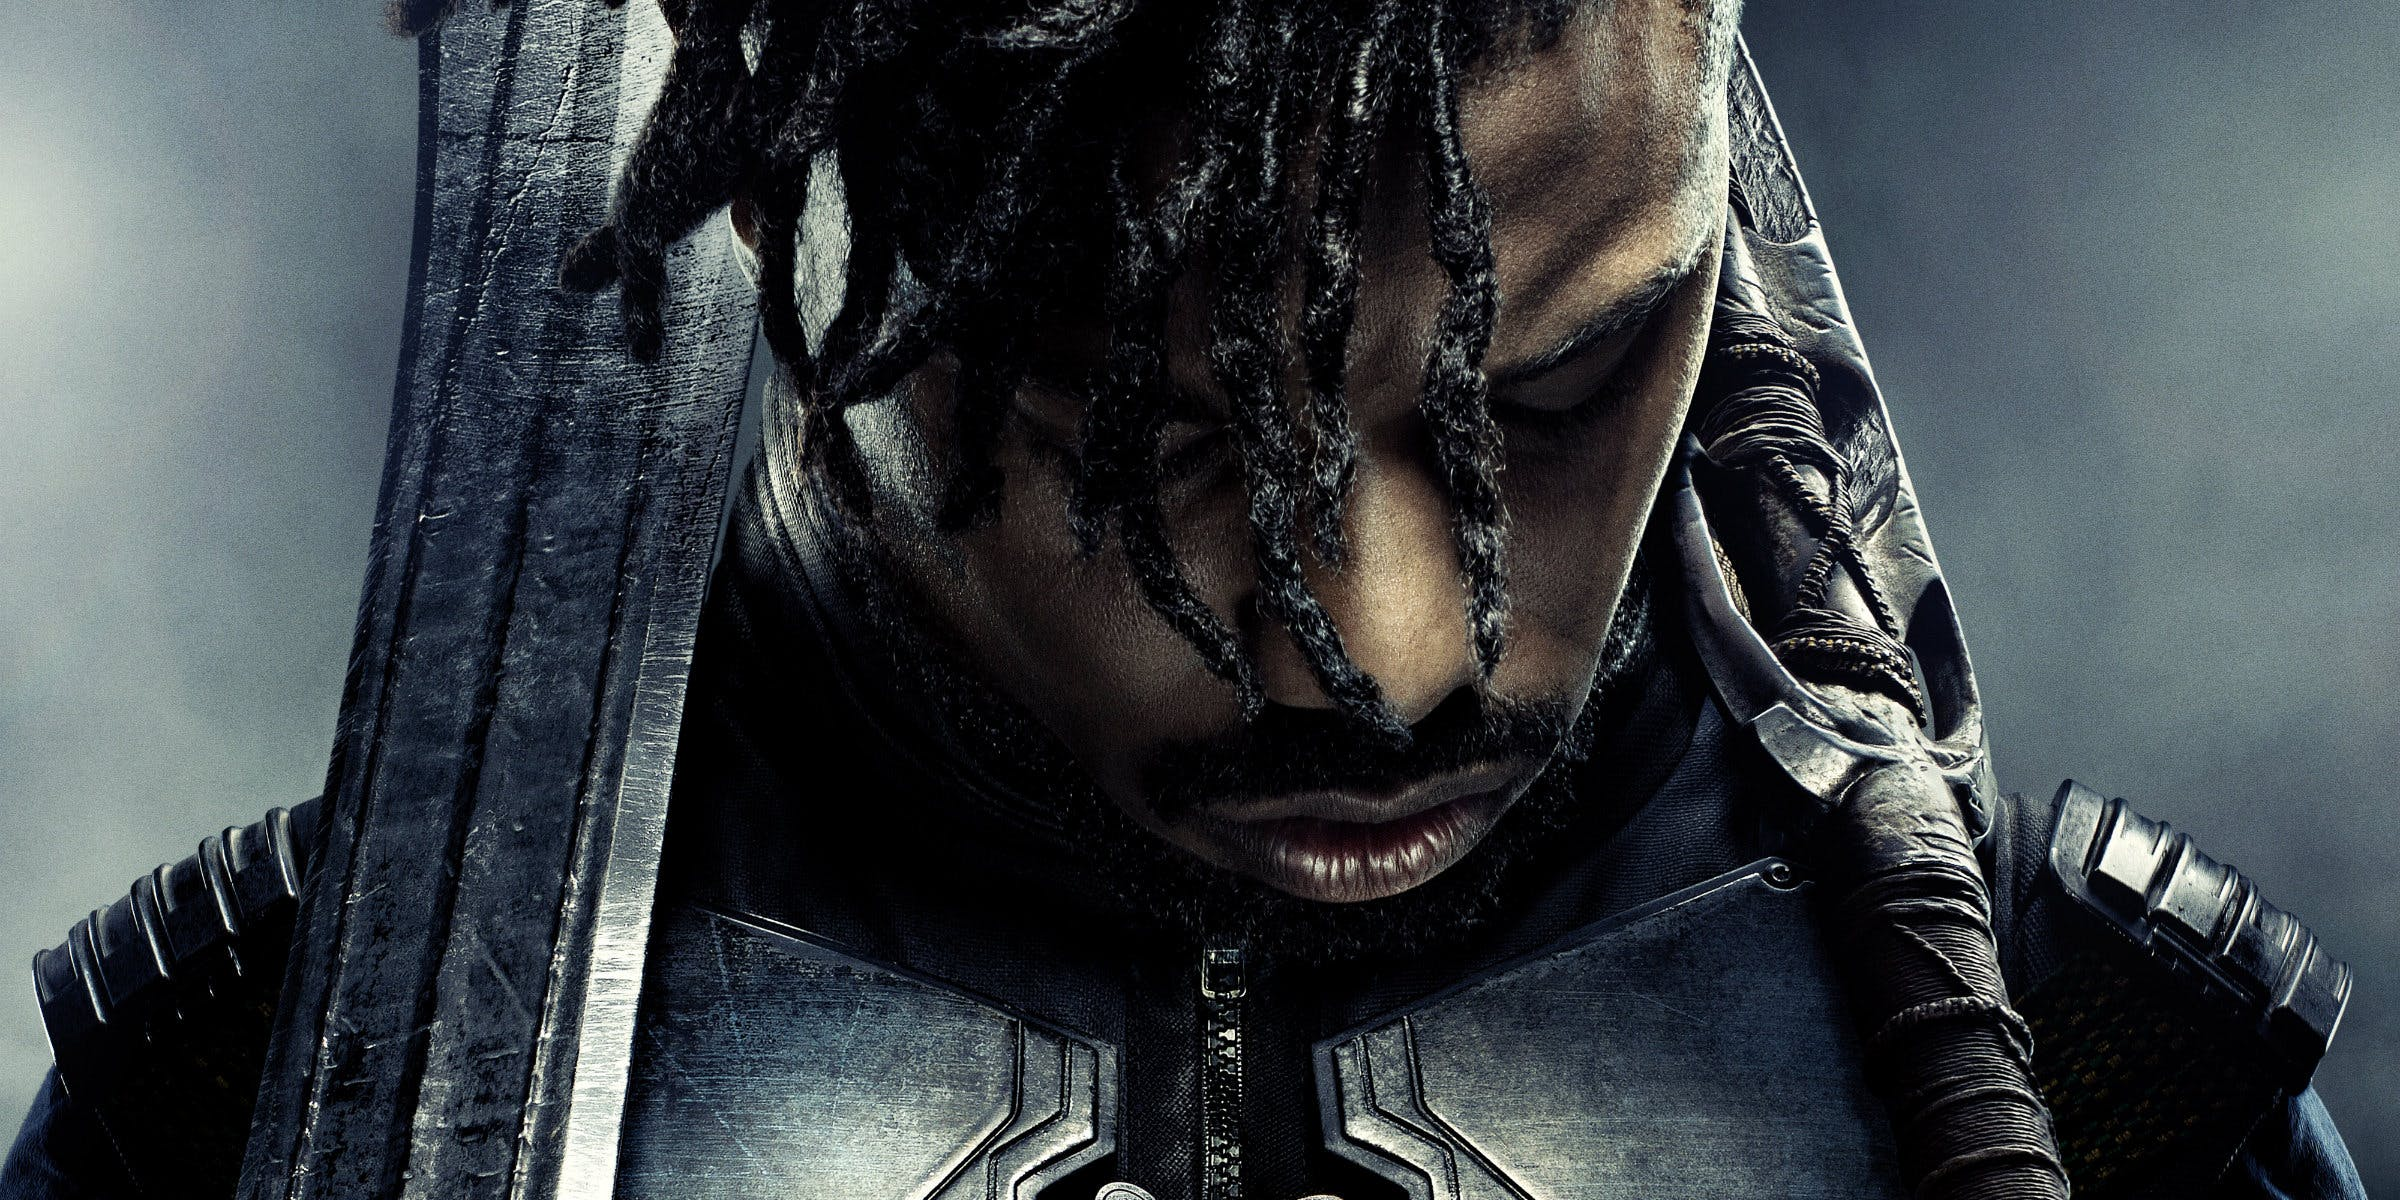 491714-black-panther-killmonger-pushed-michael-b-jordan-to-dark-place.jpg